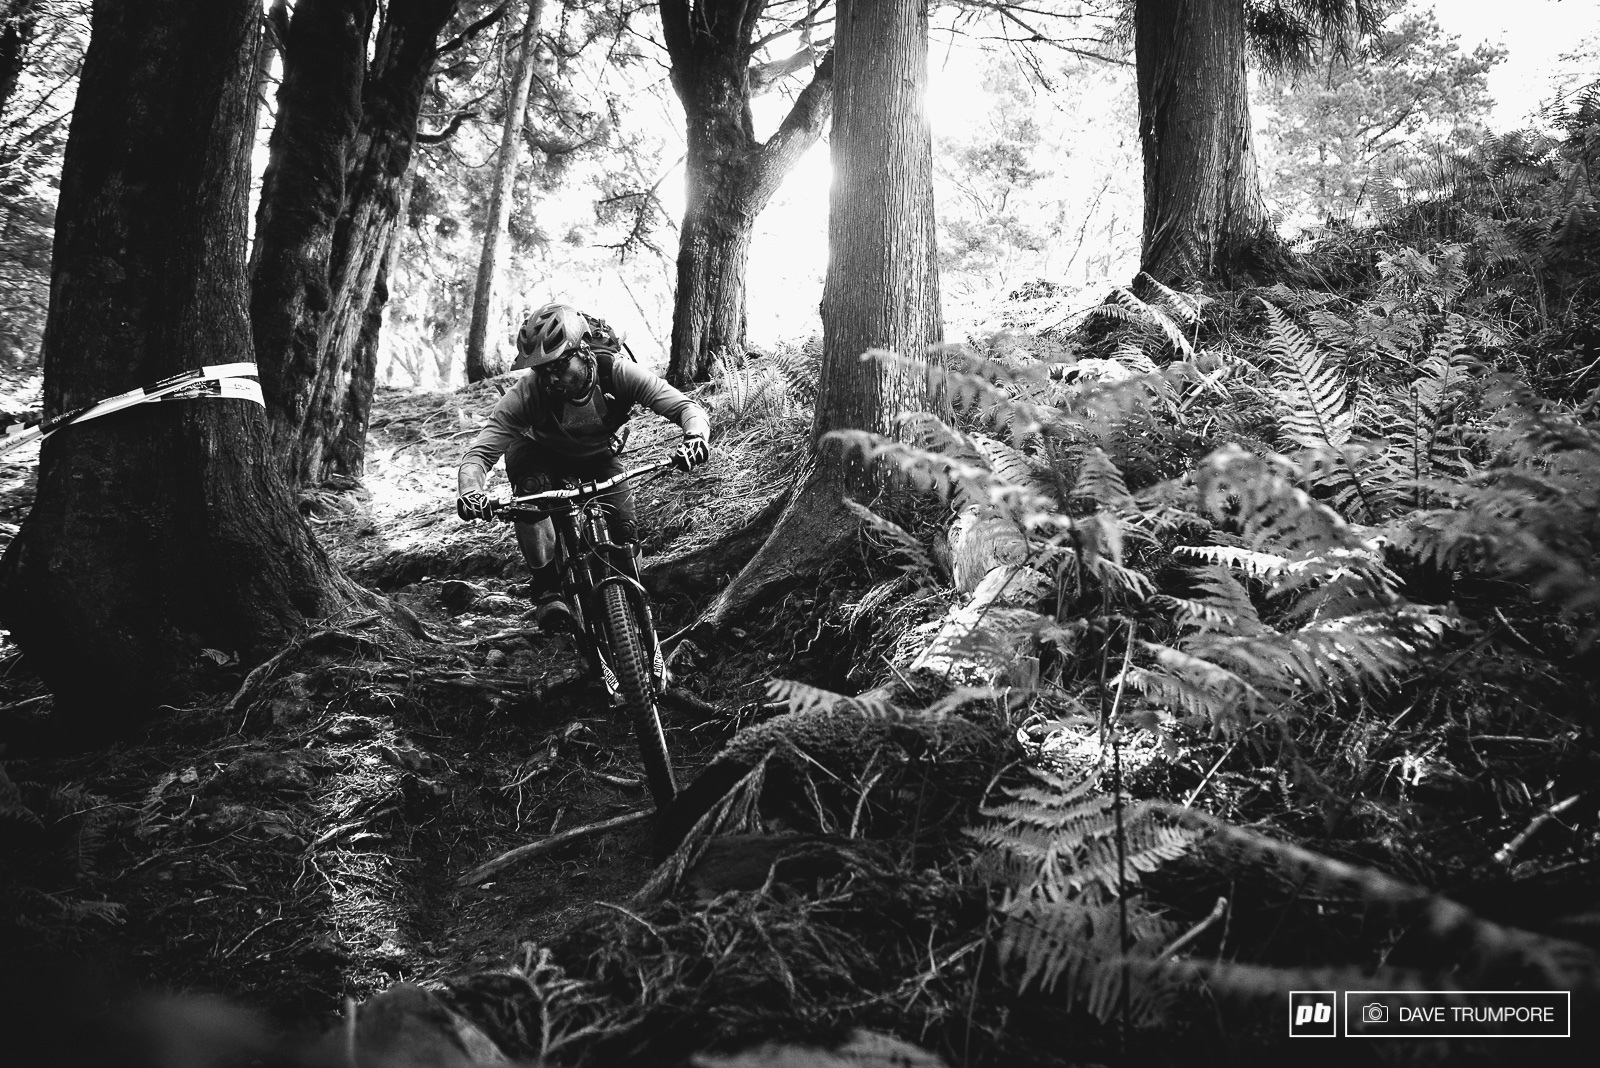 Delorme navigates the roots on stage 7.